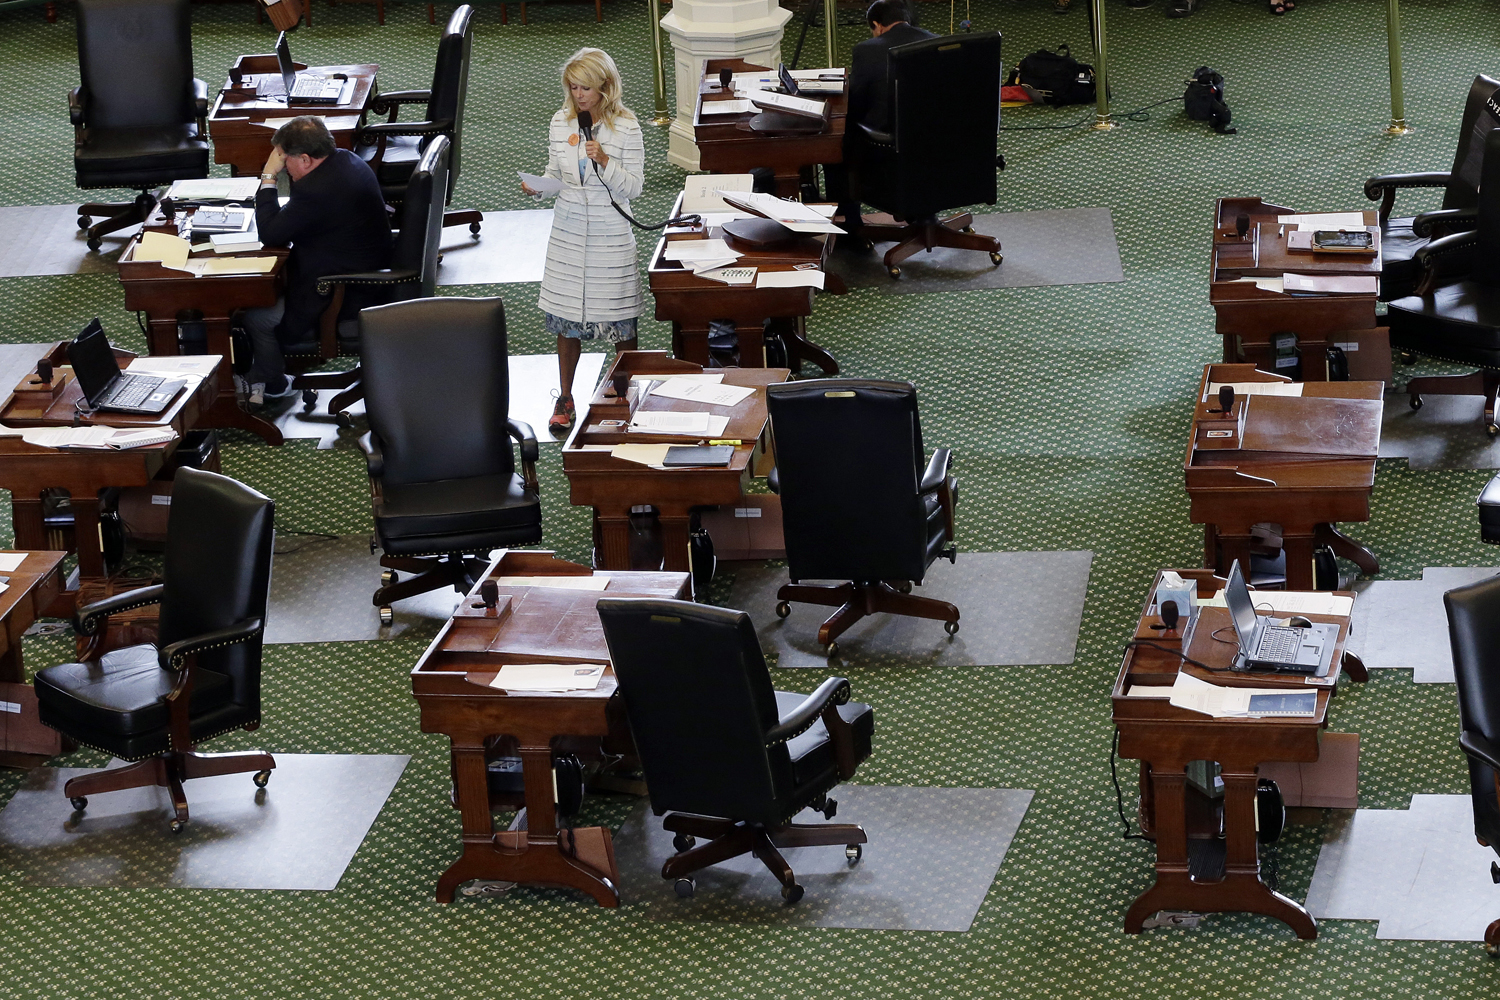 June 25, 2013. Sen. Wendy Davis, D-Fort Worth, stands on a near empty senate floor as she filibusters in an effort to kill an abortion bill in Austin, Tx.